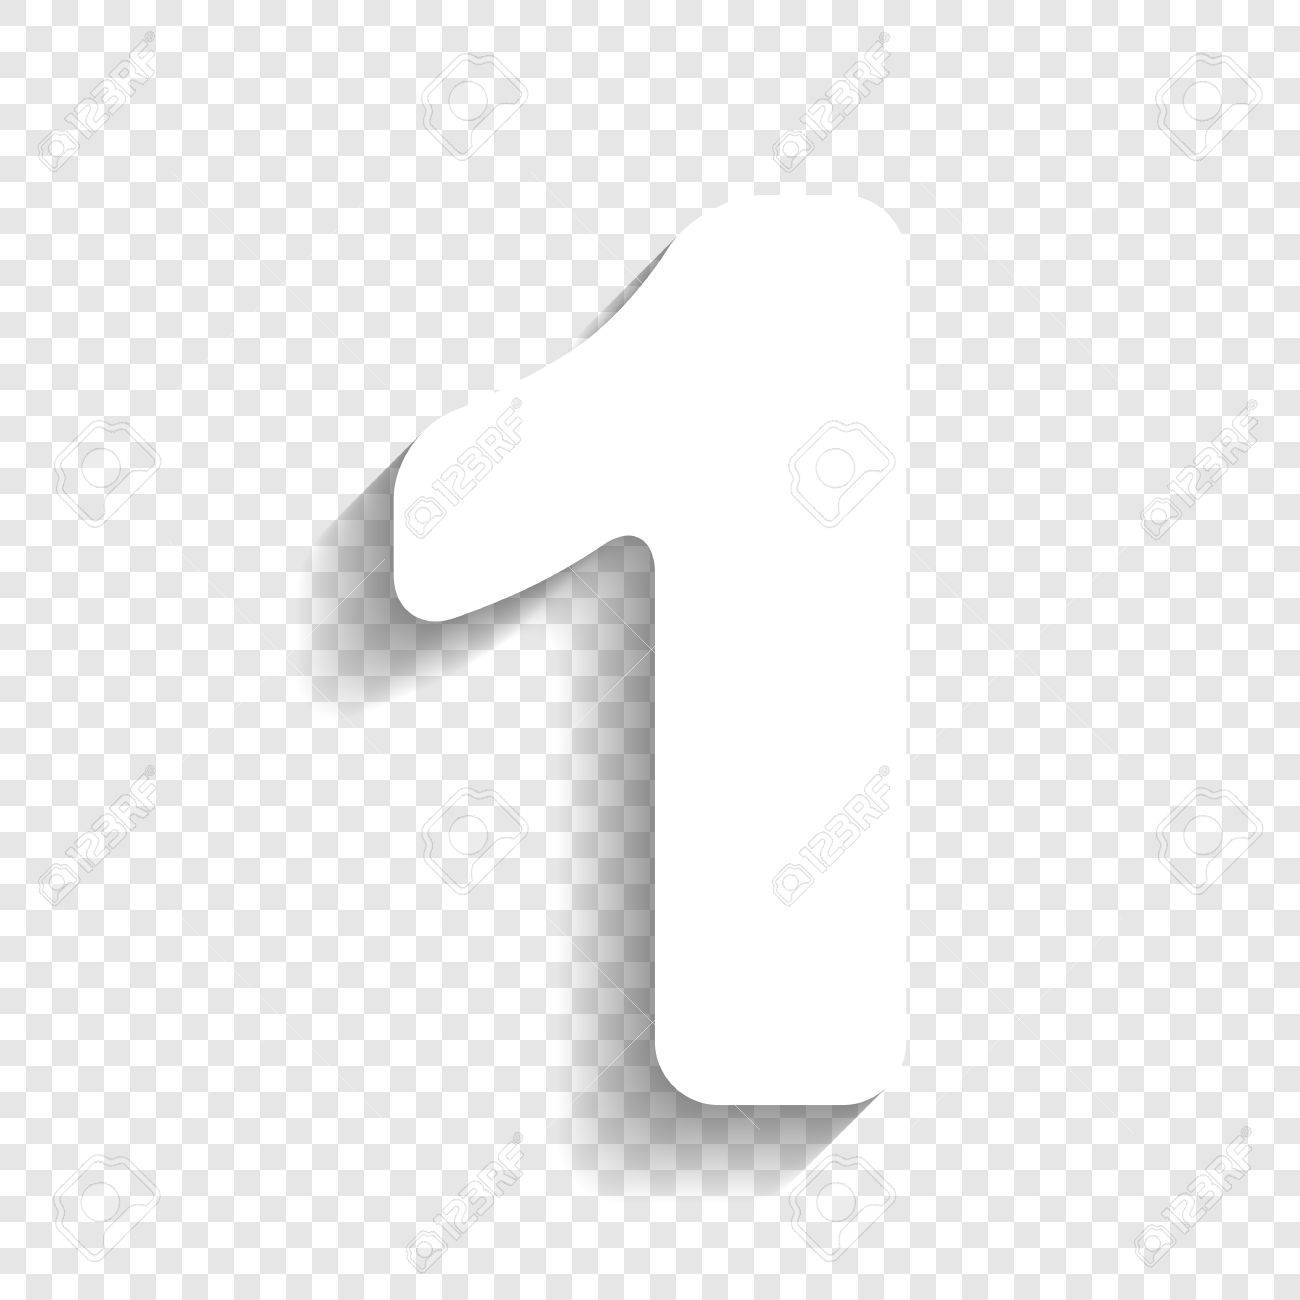 Number 1 Clipart No Background.